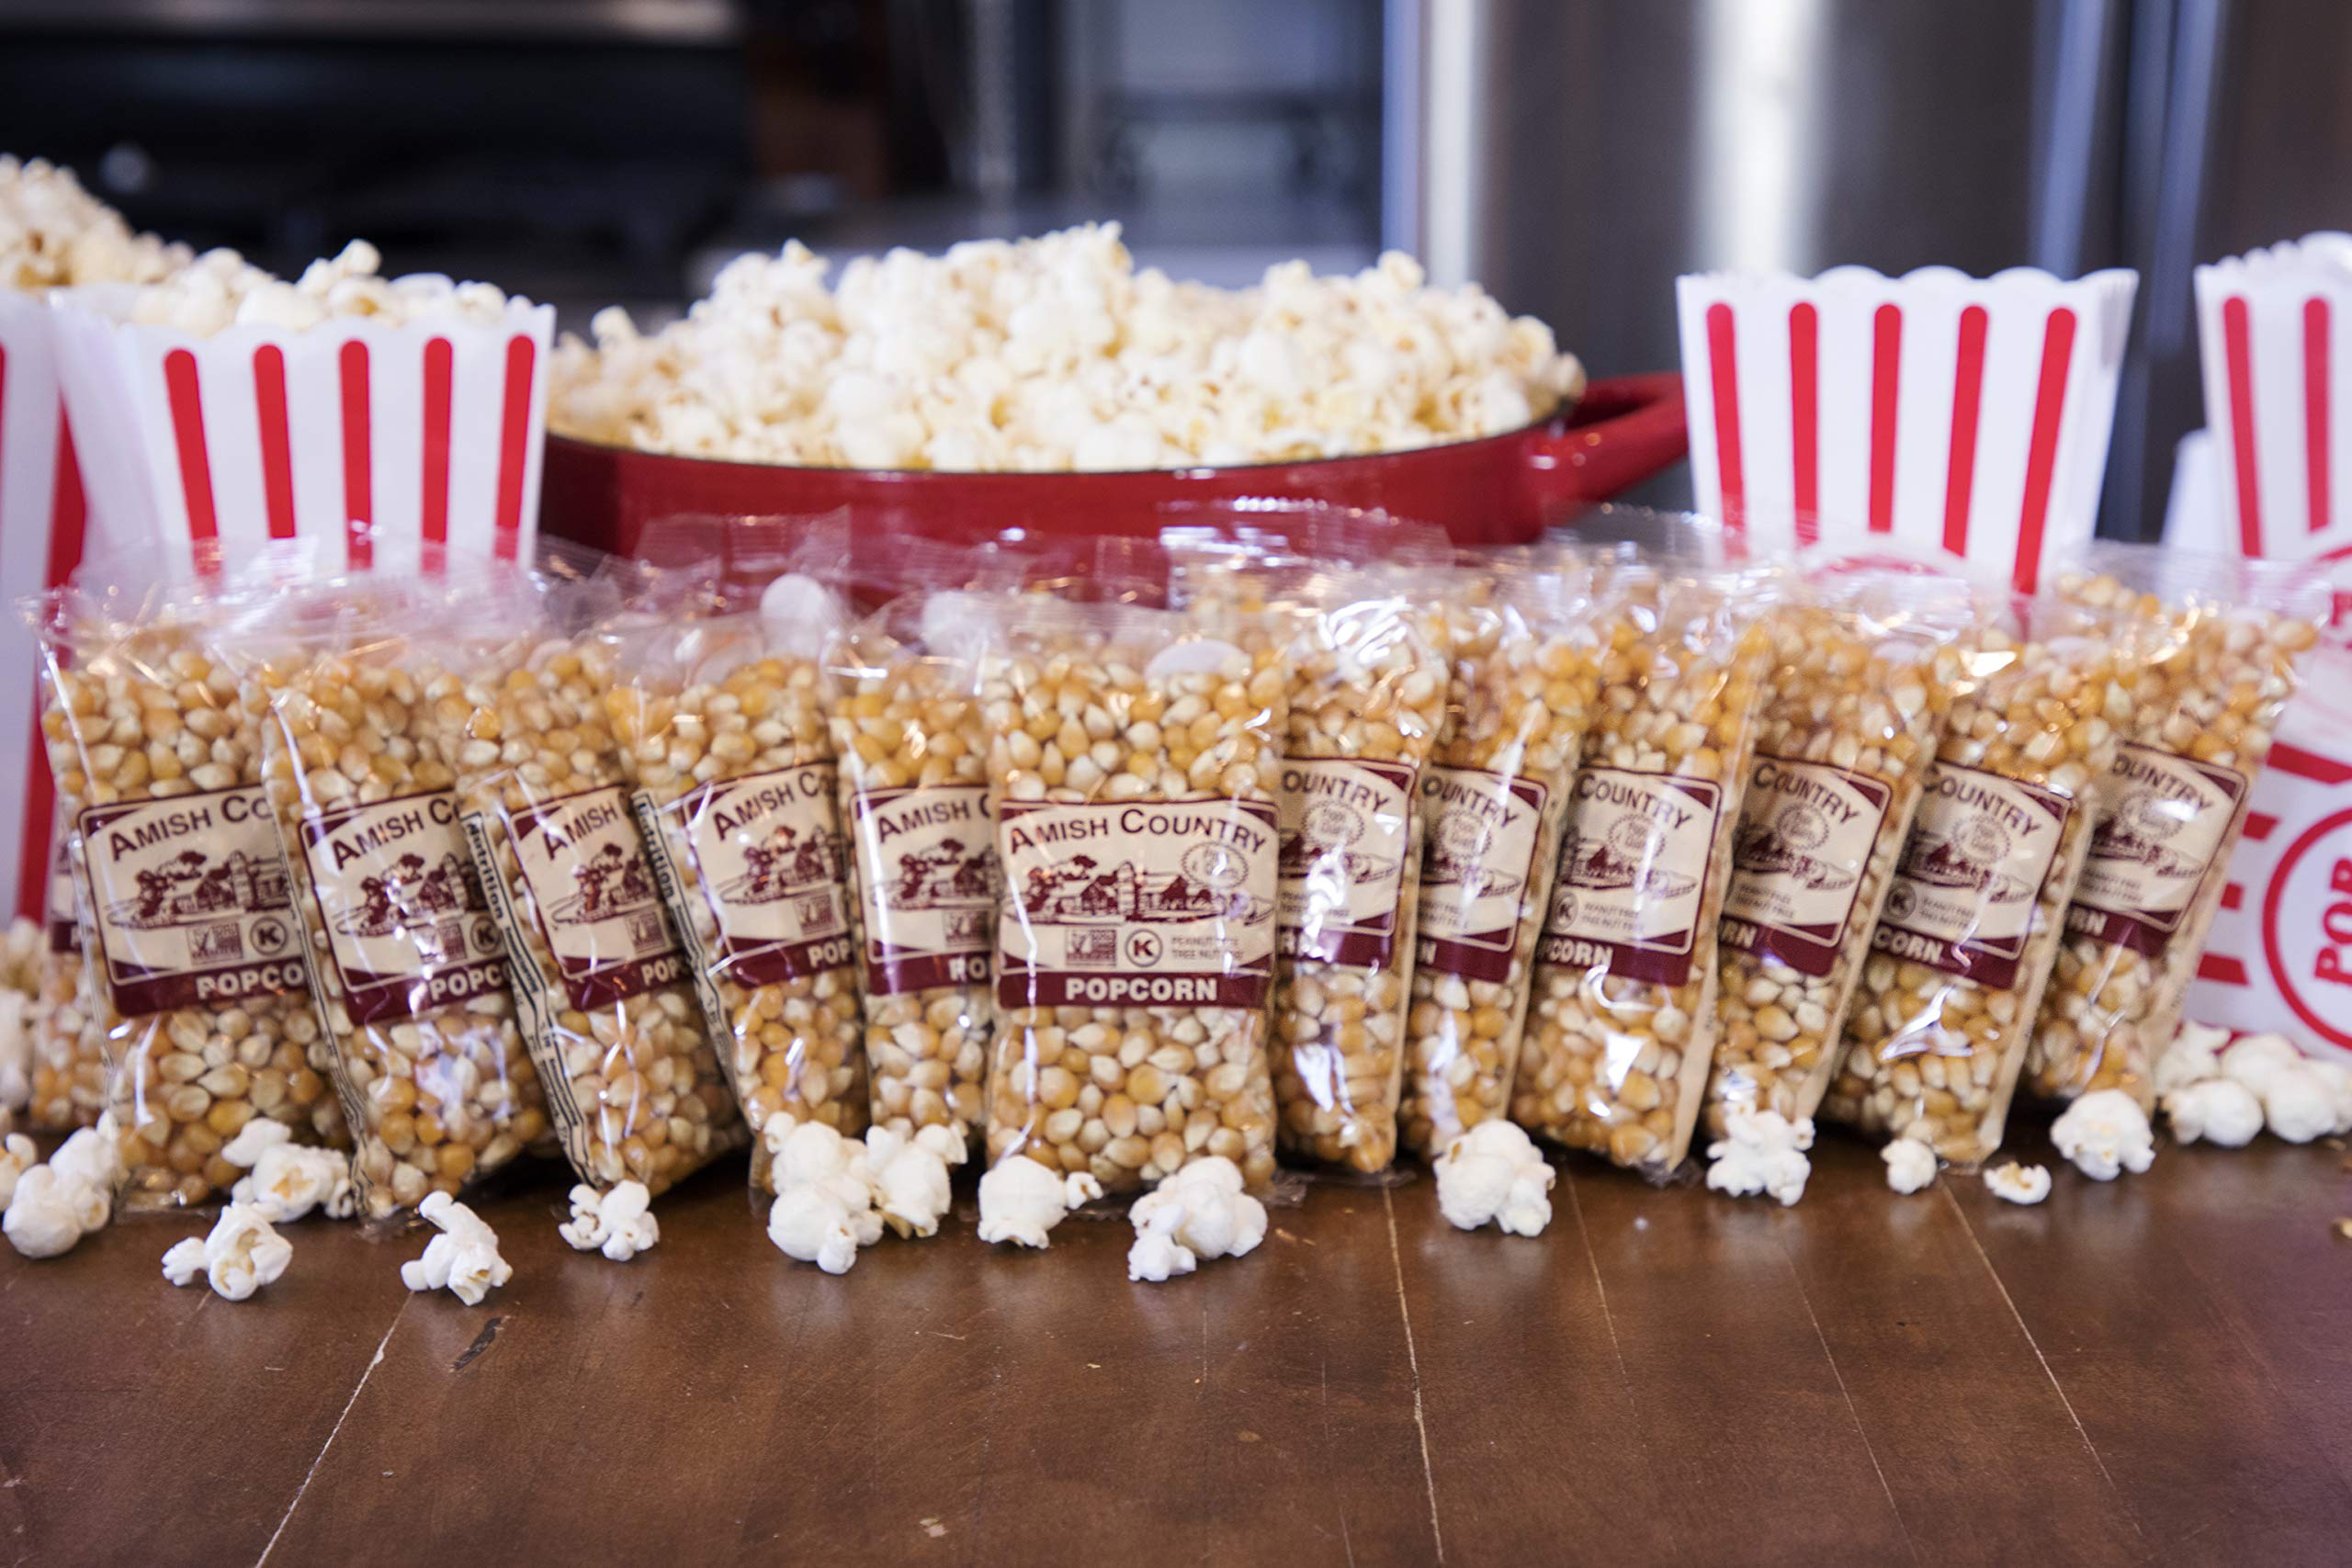 Amish Country Popcorn - Mushroom Popcorn (4 Ounce - 24 Pack) Bags - Old Fashioned, Non GMO, and Gluten Free - with Recipe Guide by Amish Country Popcorn (Image #3)